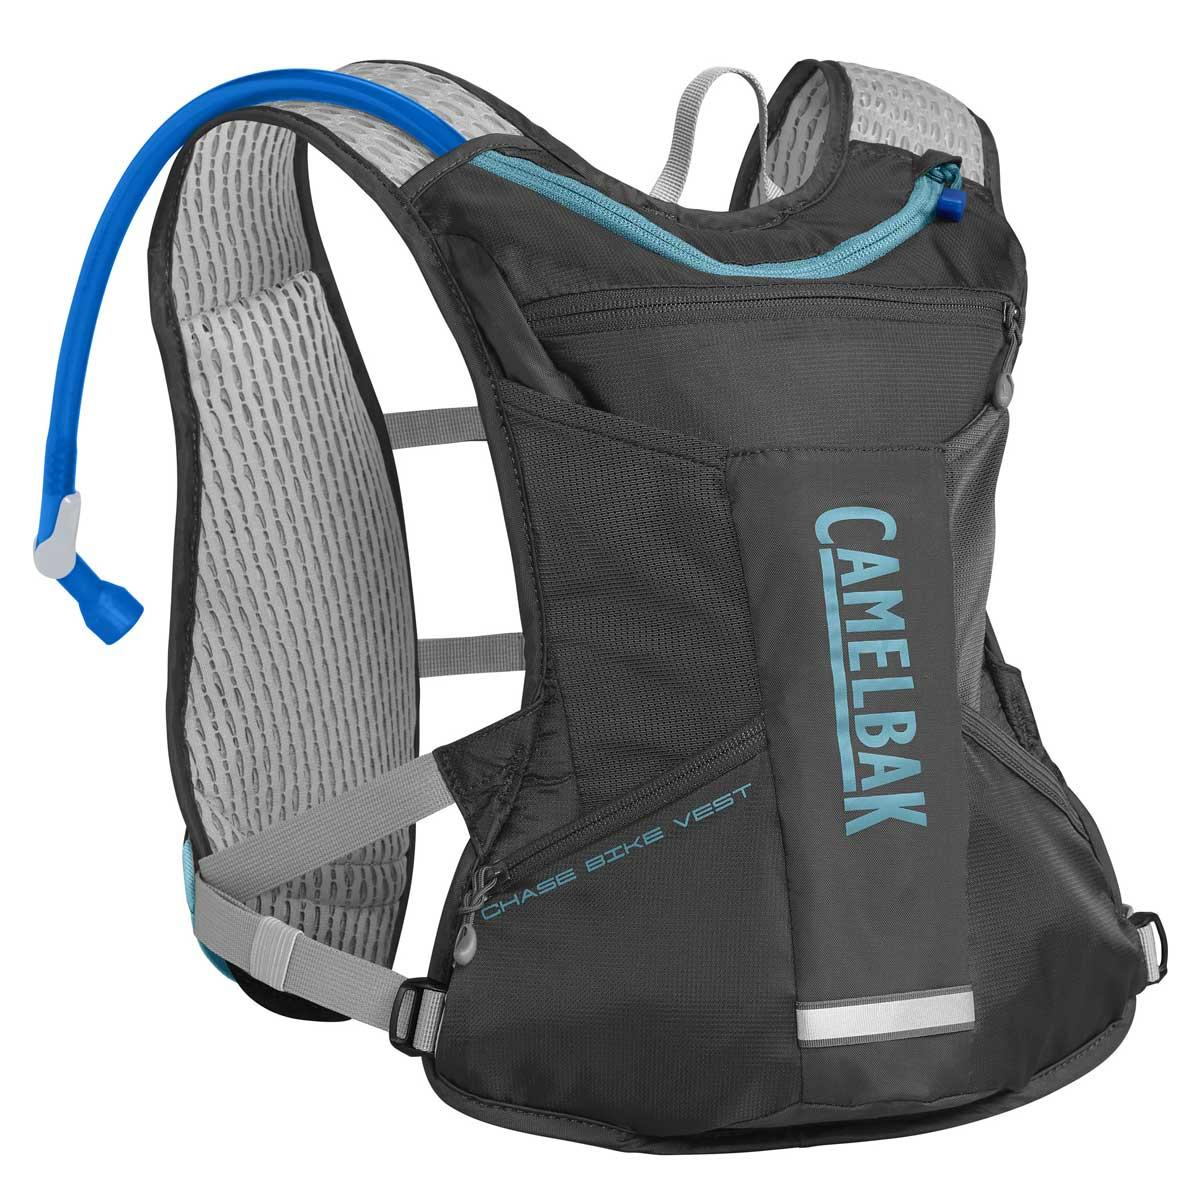 CamelBak Chase Women's Bike Vest in Charcoal and Lake Blue